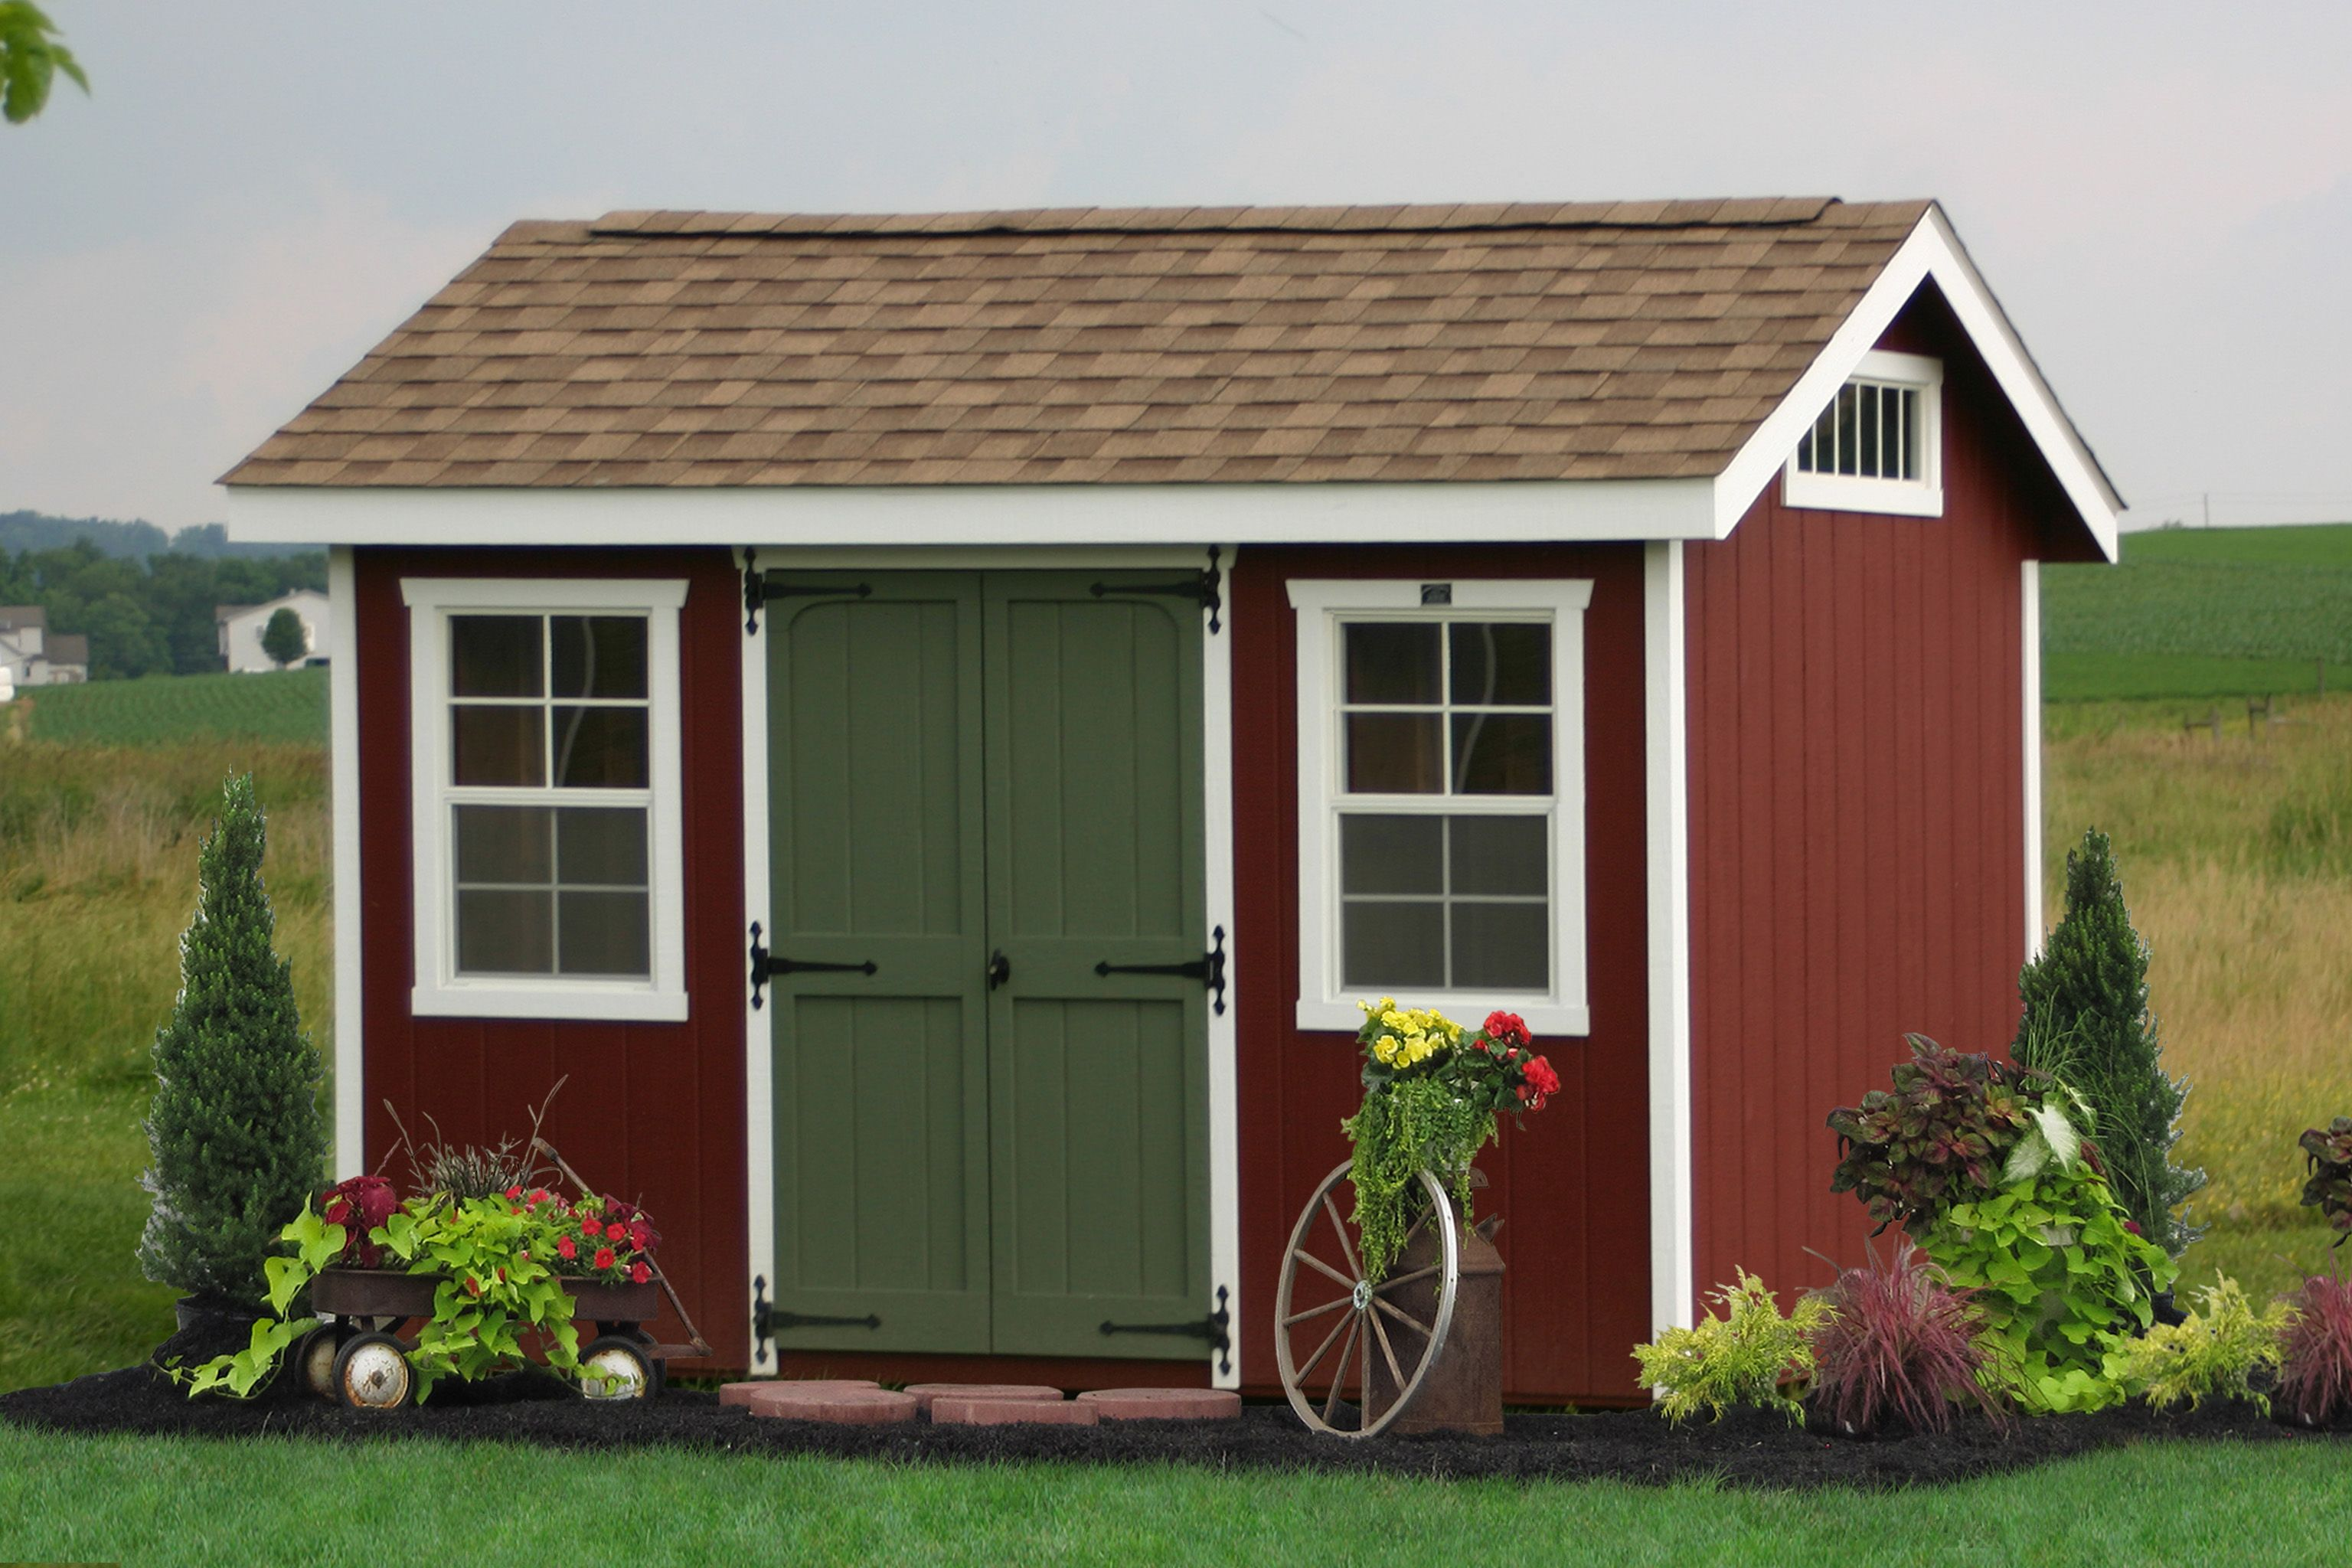 buy amish garden sheds in ny - Garden Sheds Ny